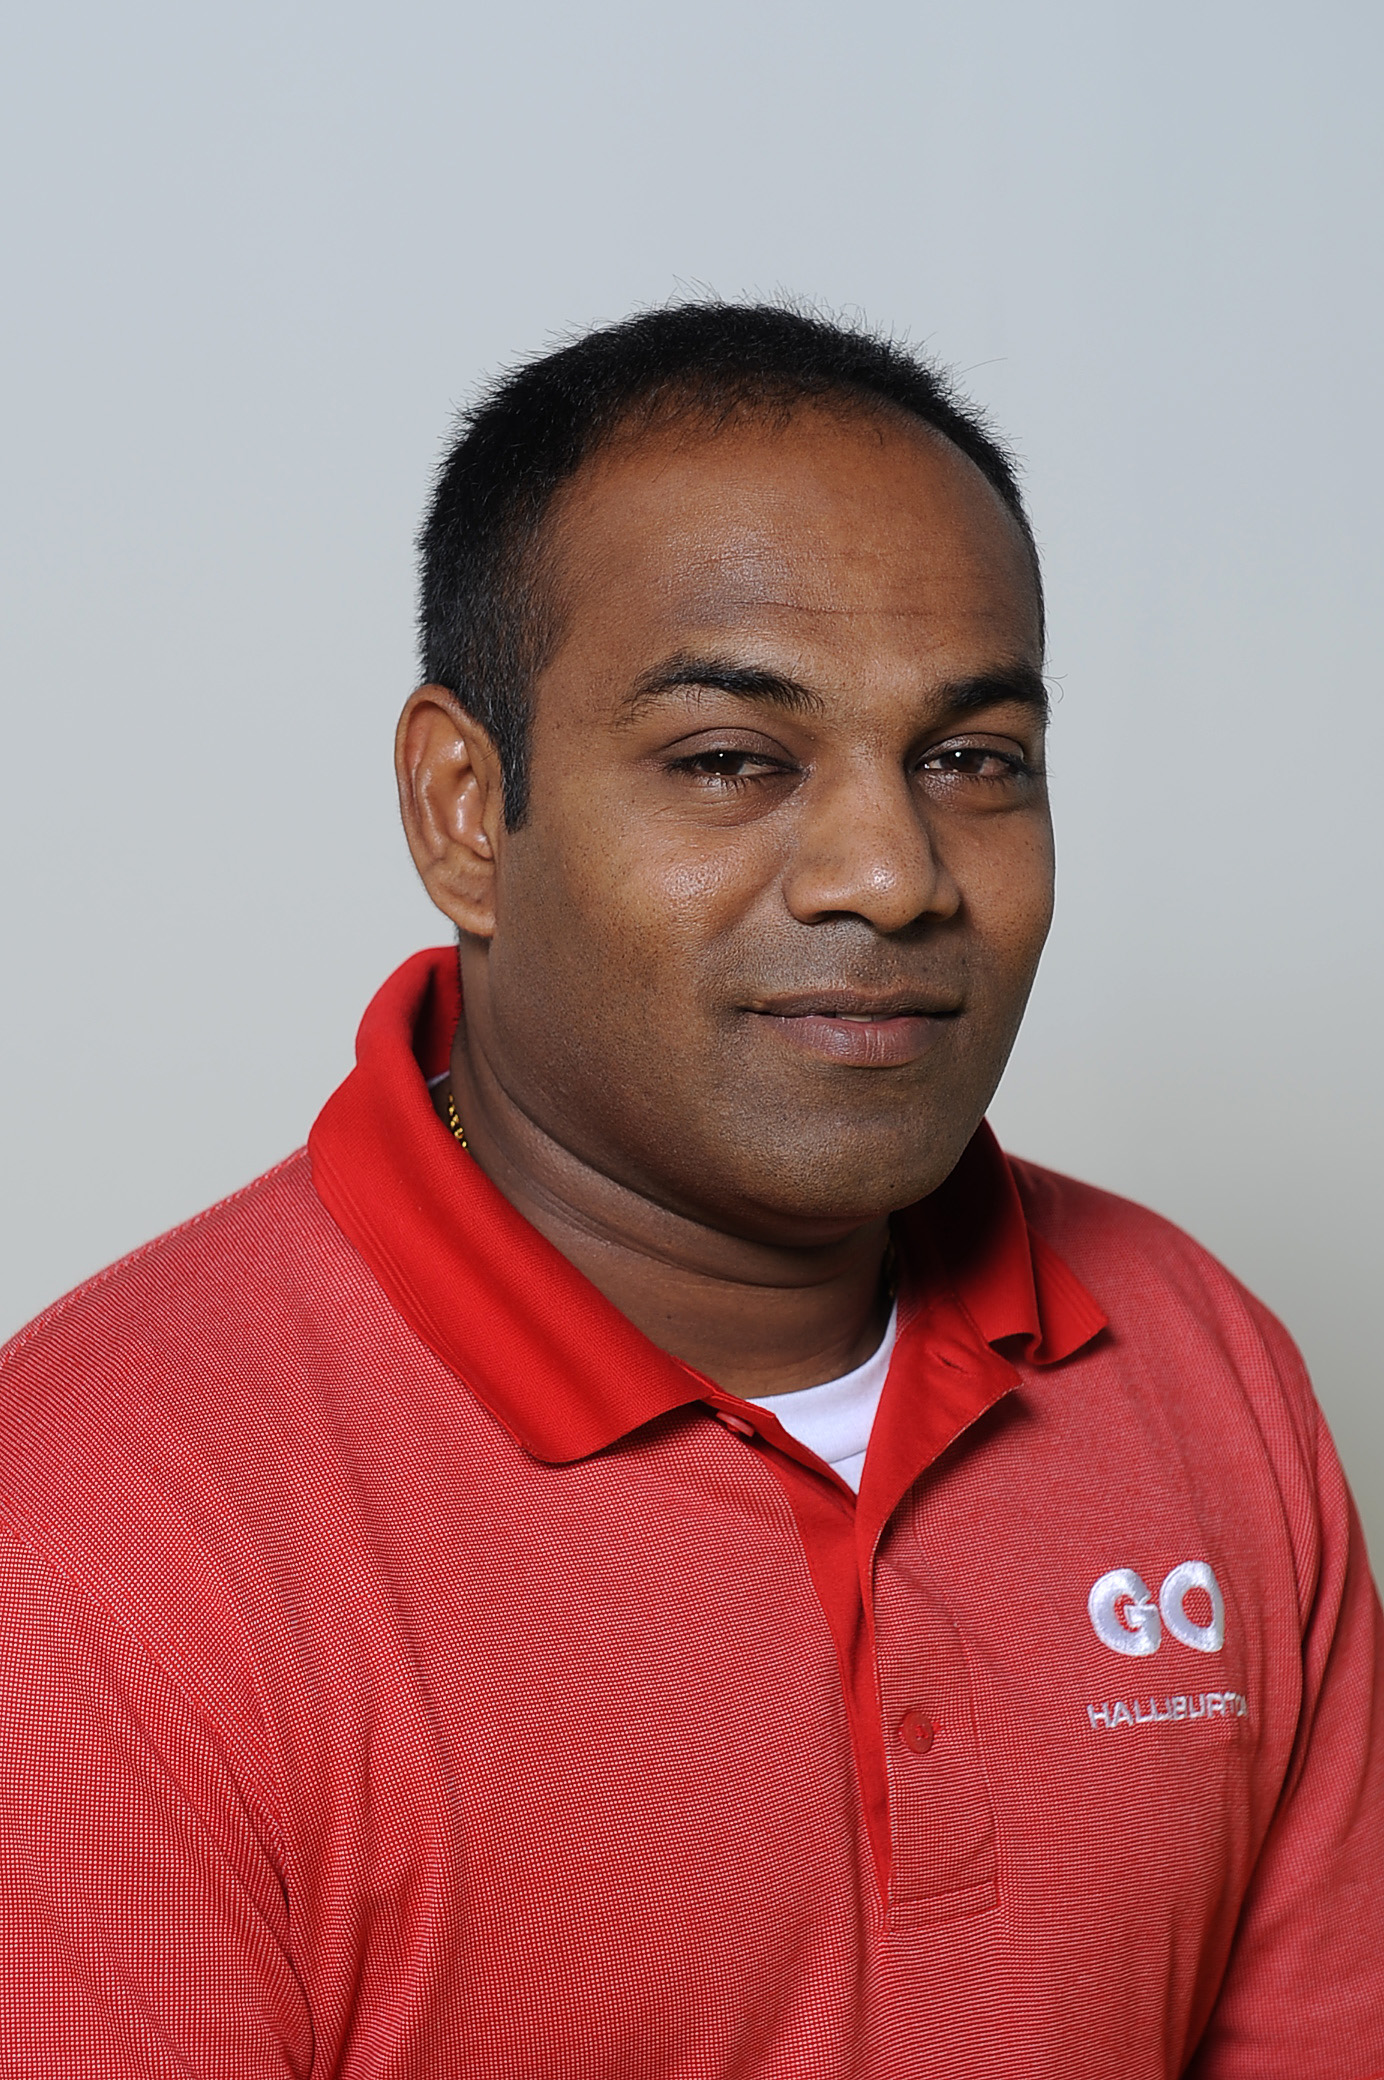 Alan Valliappan